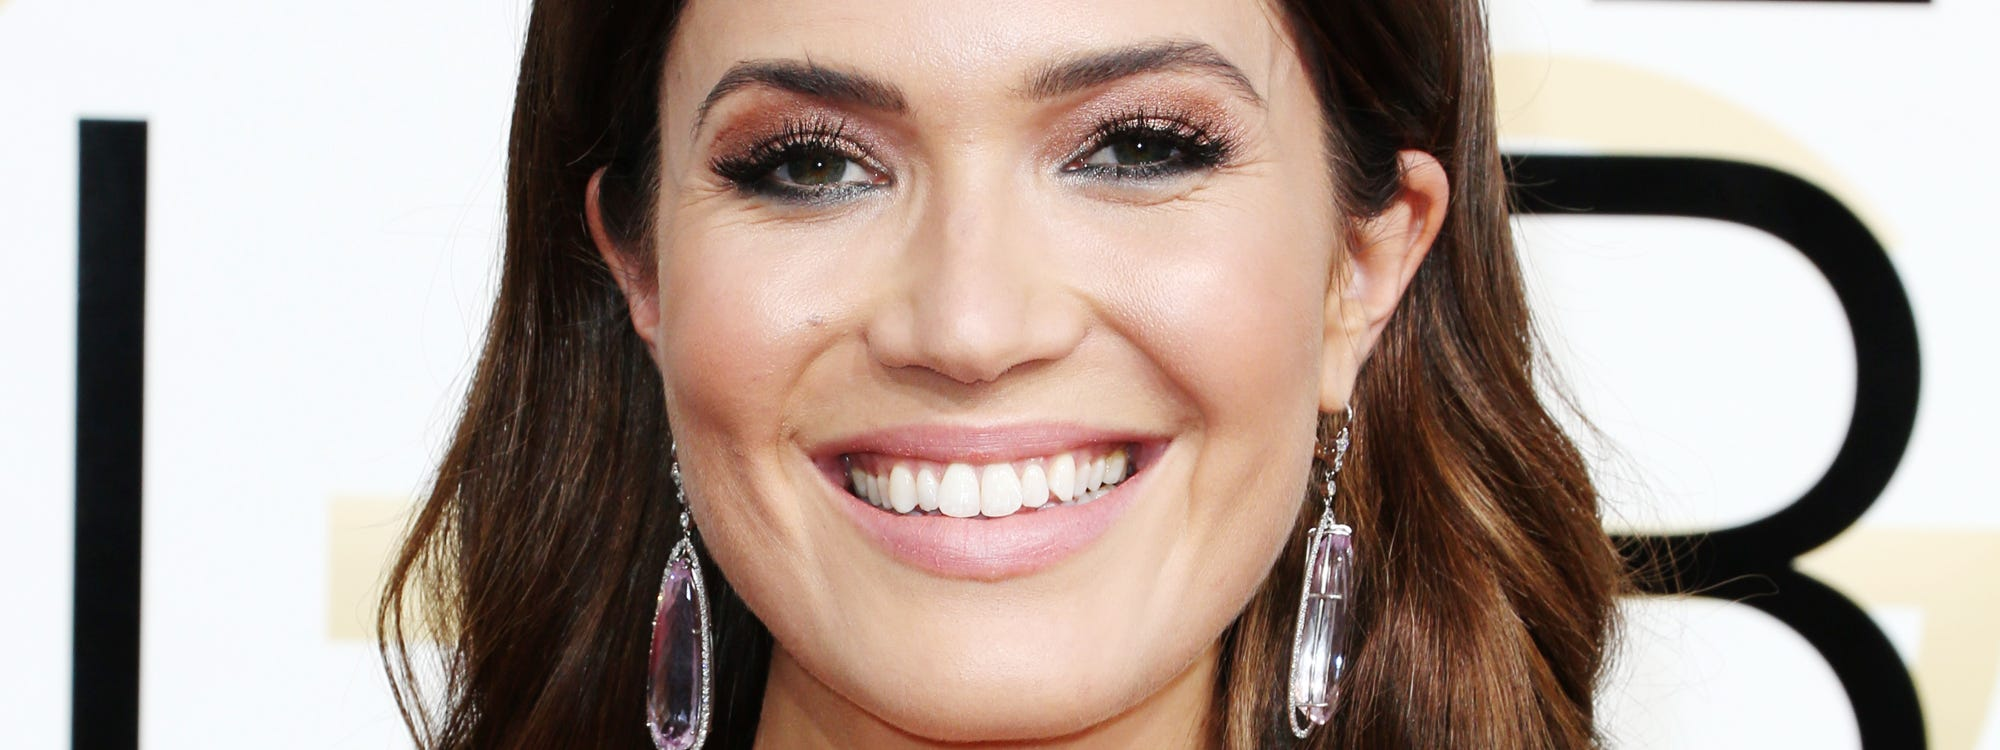 Mandy moore golden globes 70s style hair nude nails baditri Image collections